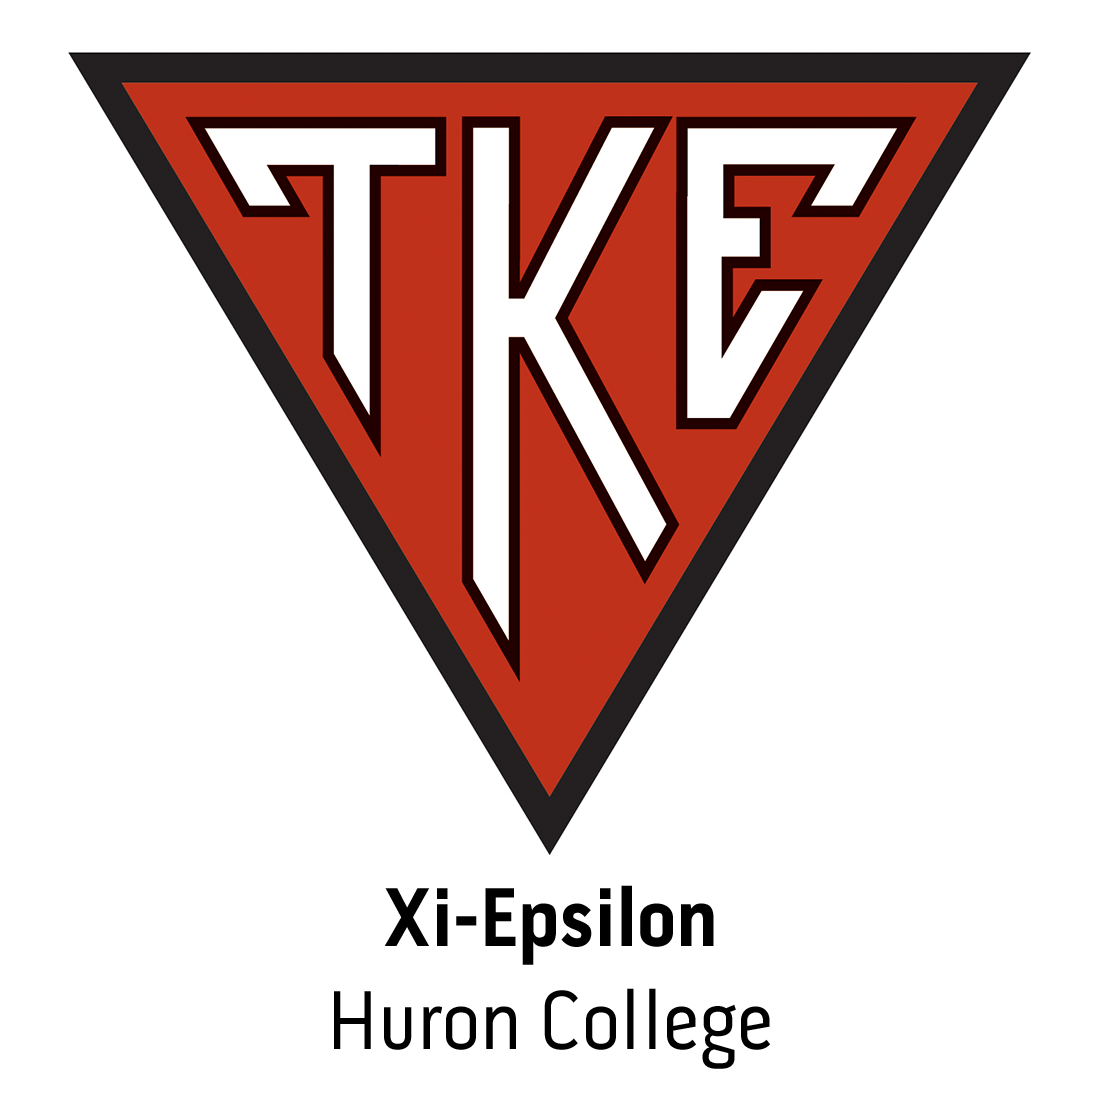 Xi-Epsilon Chapter at Huron College